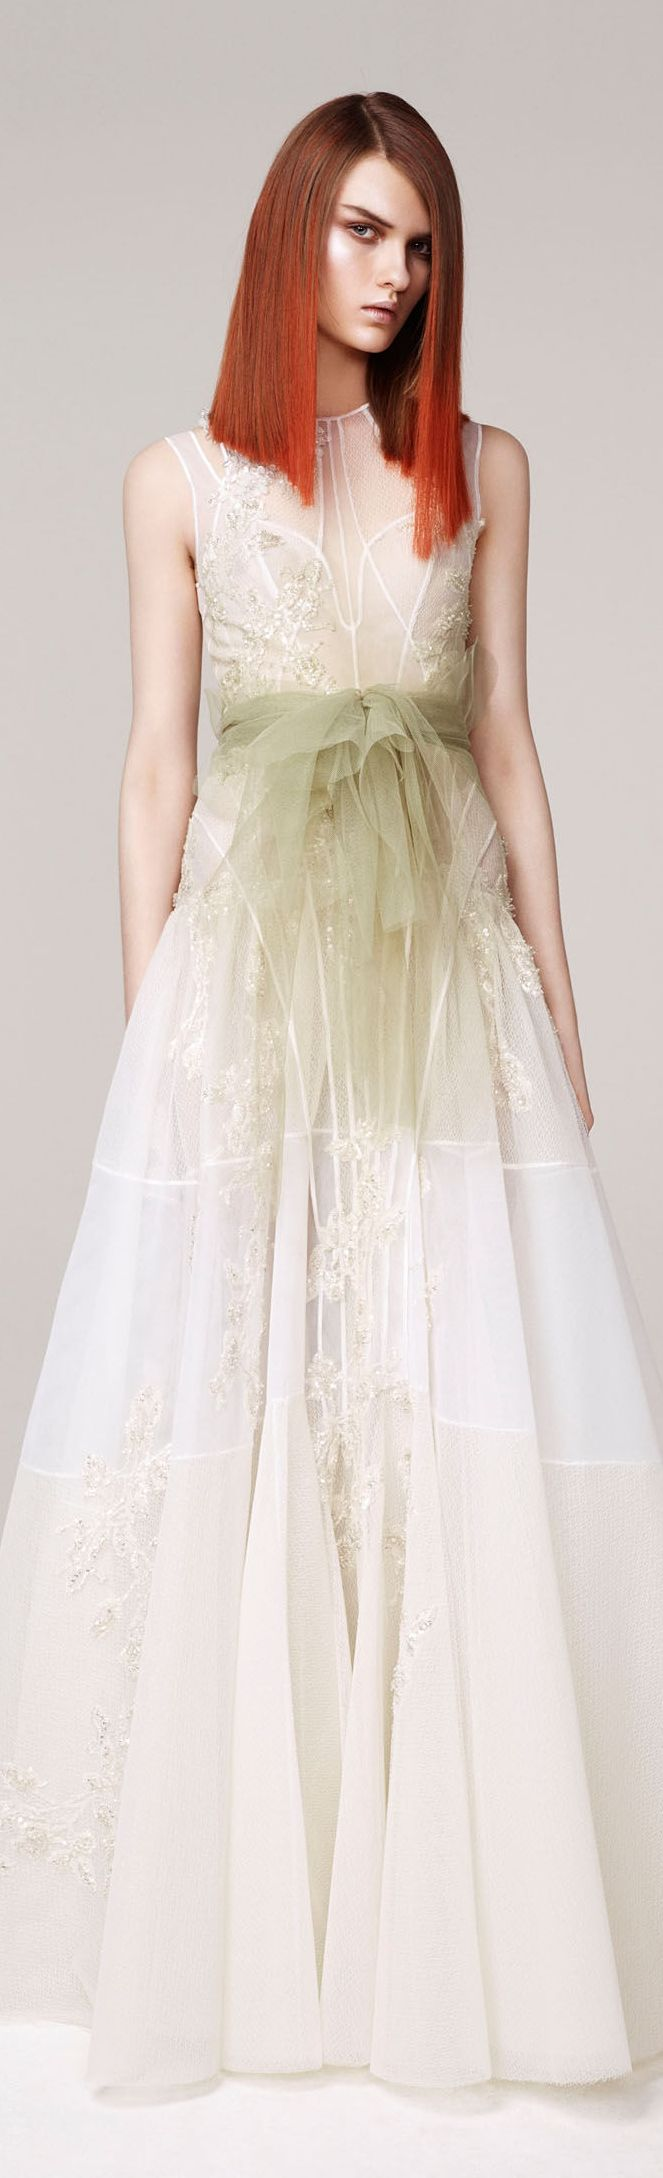 BASIL SODA COUTURE SS 2013